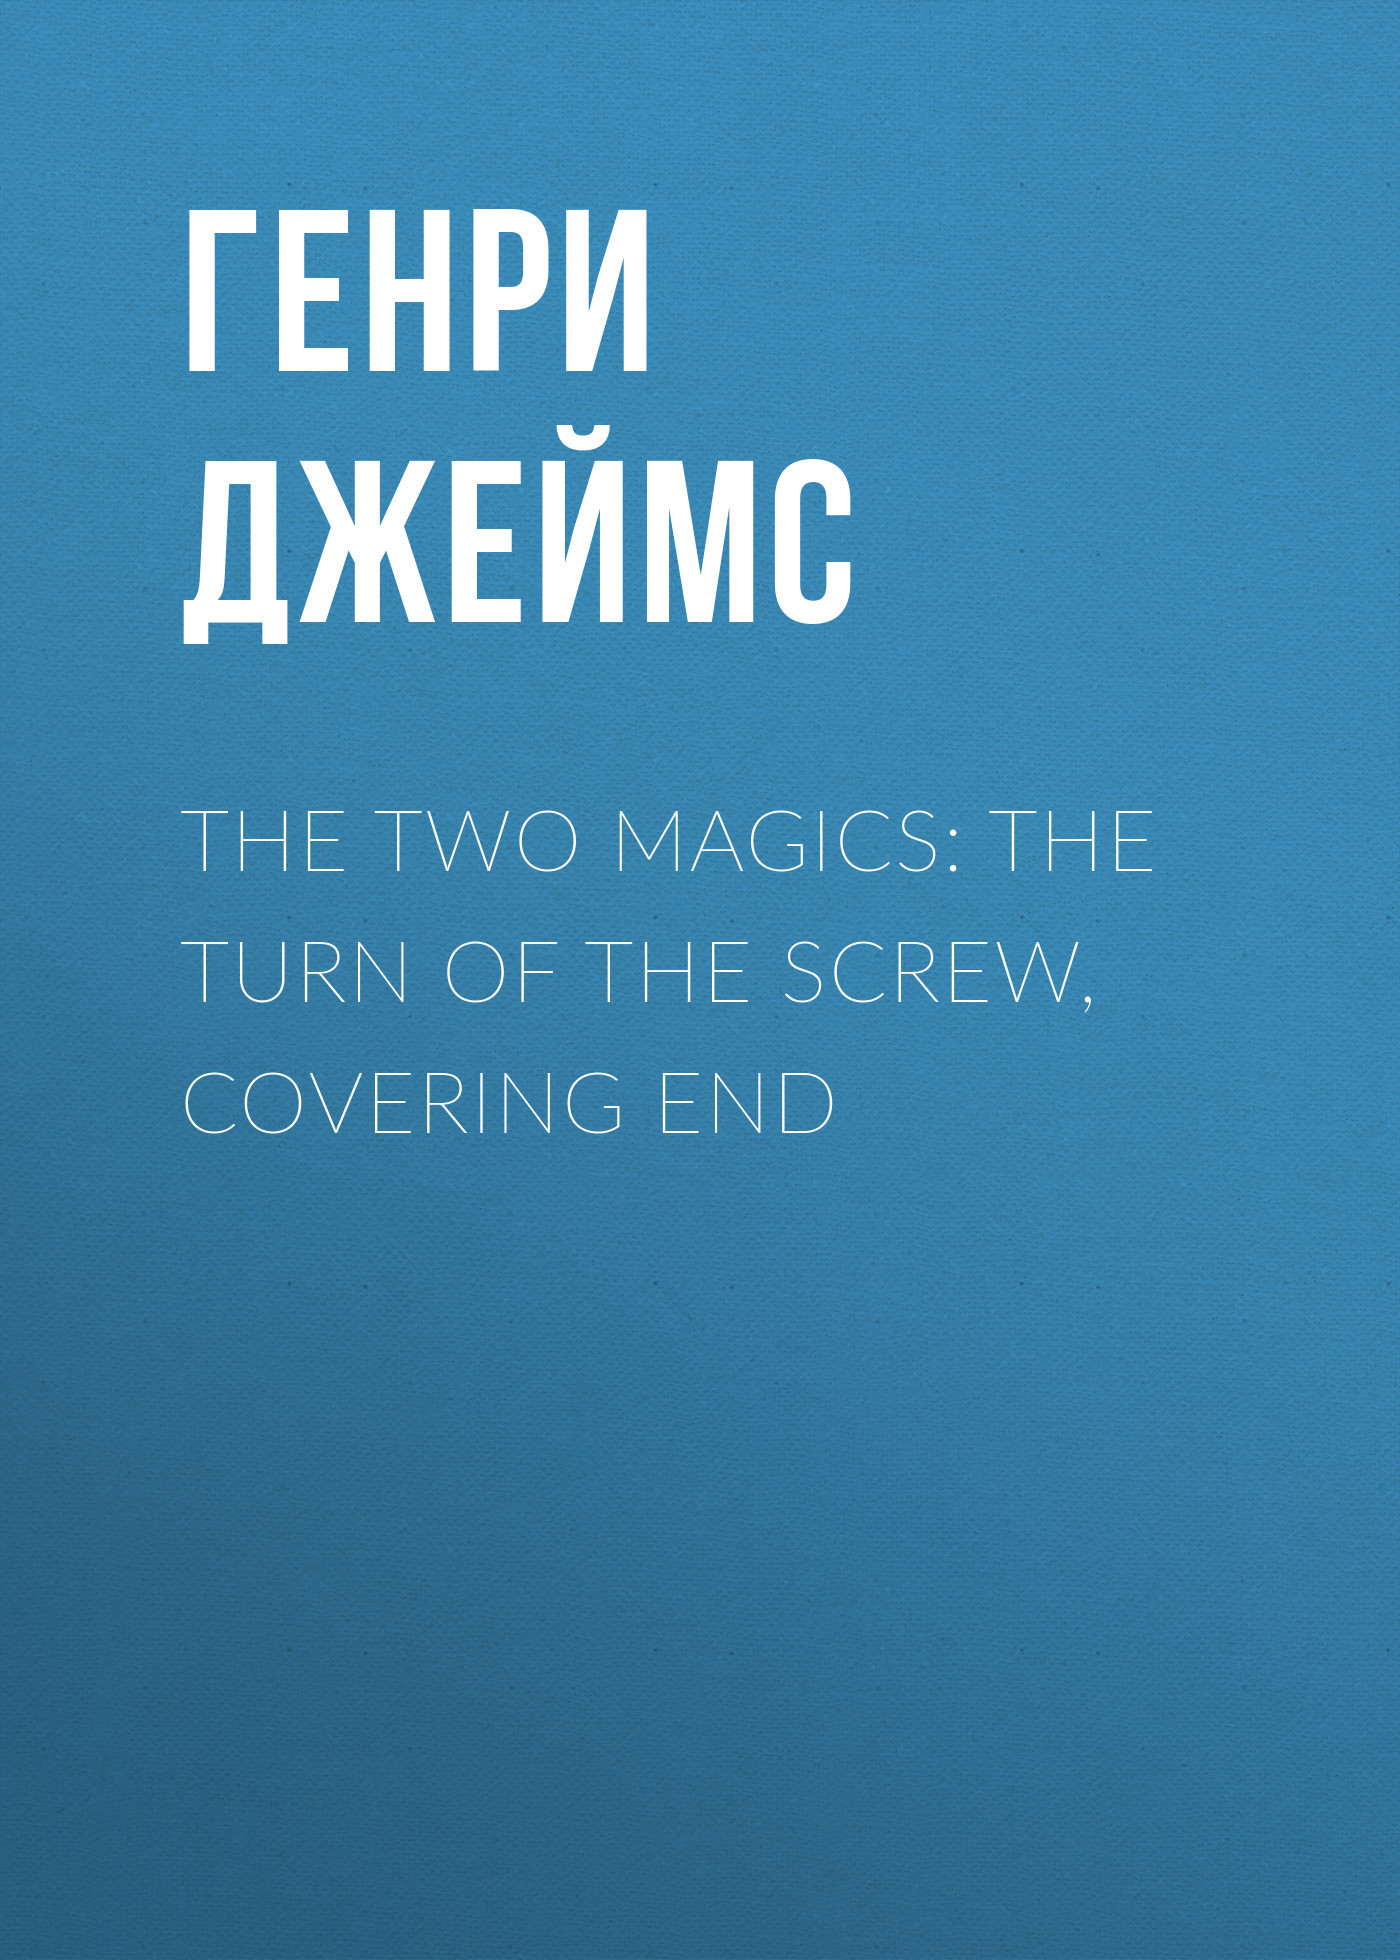 Генри Джеймс The Two Magics: The Turn of the Screw, Covering End sitemap html page 10 page 8 page 8